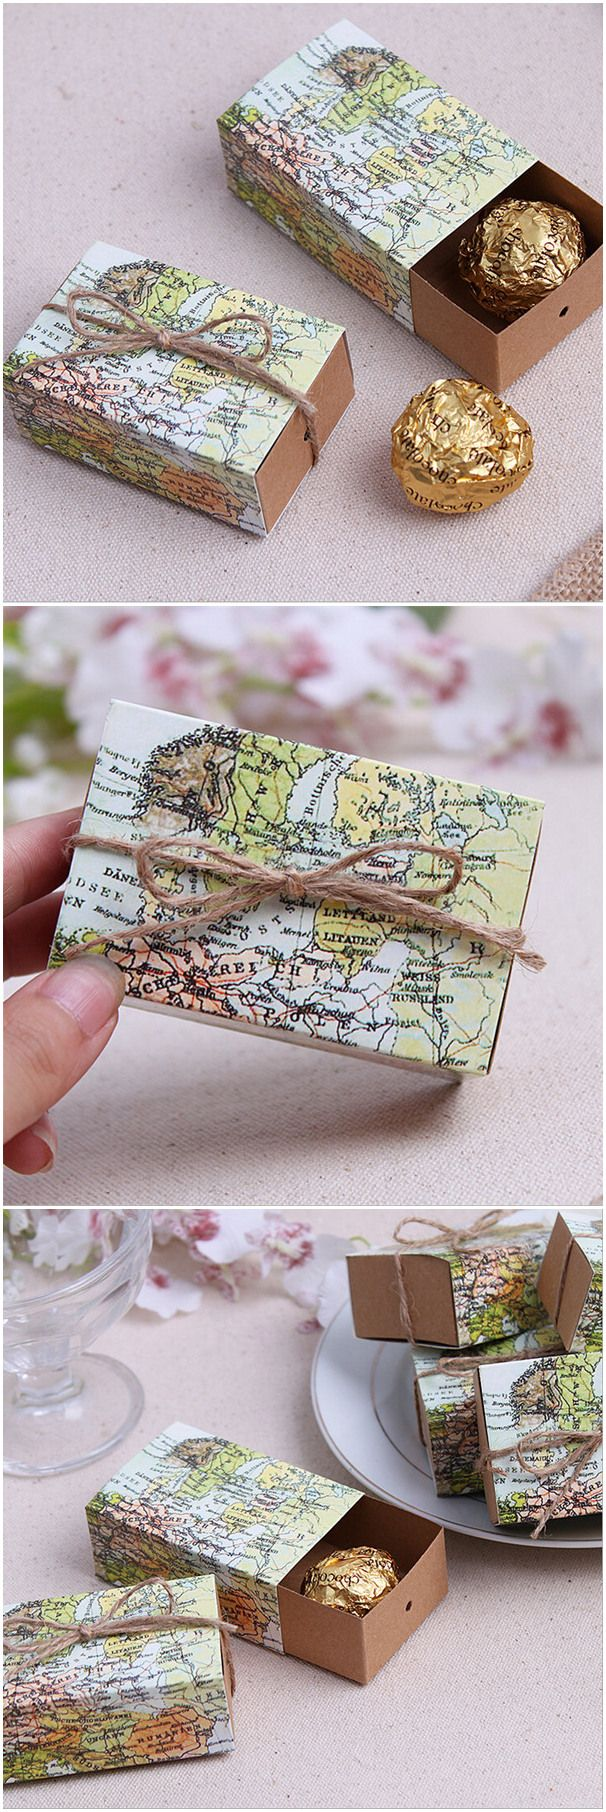 Travel Themed Wedding Favor Box Ideas For Destination Weddings Themed Wedding Favors Wedding Gifts For Guests Trendy Wedding Favors